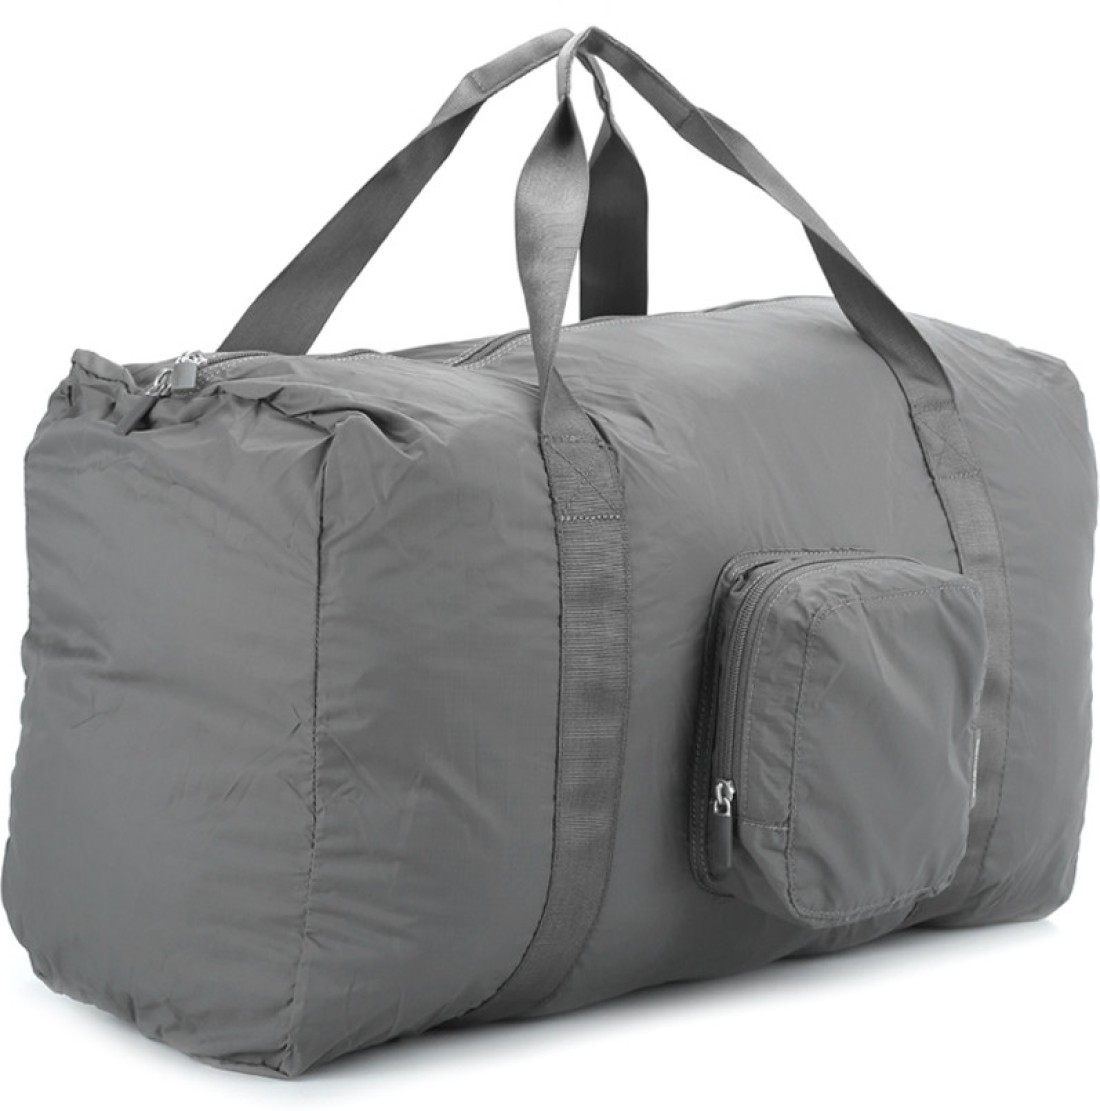 Gym Bag Flipkart: Samsonite Travel Link 21.3 Inch Travel Duffel Bag Grey